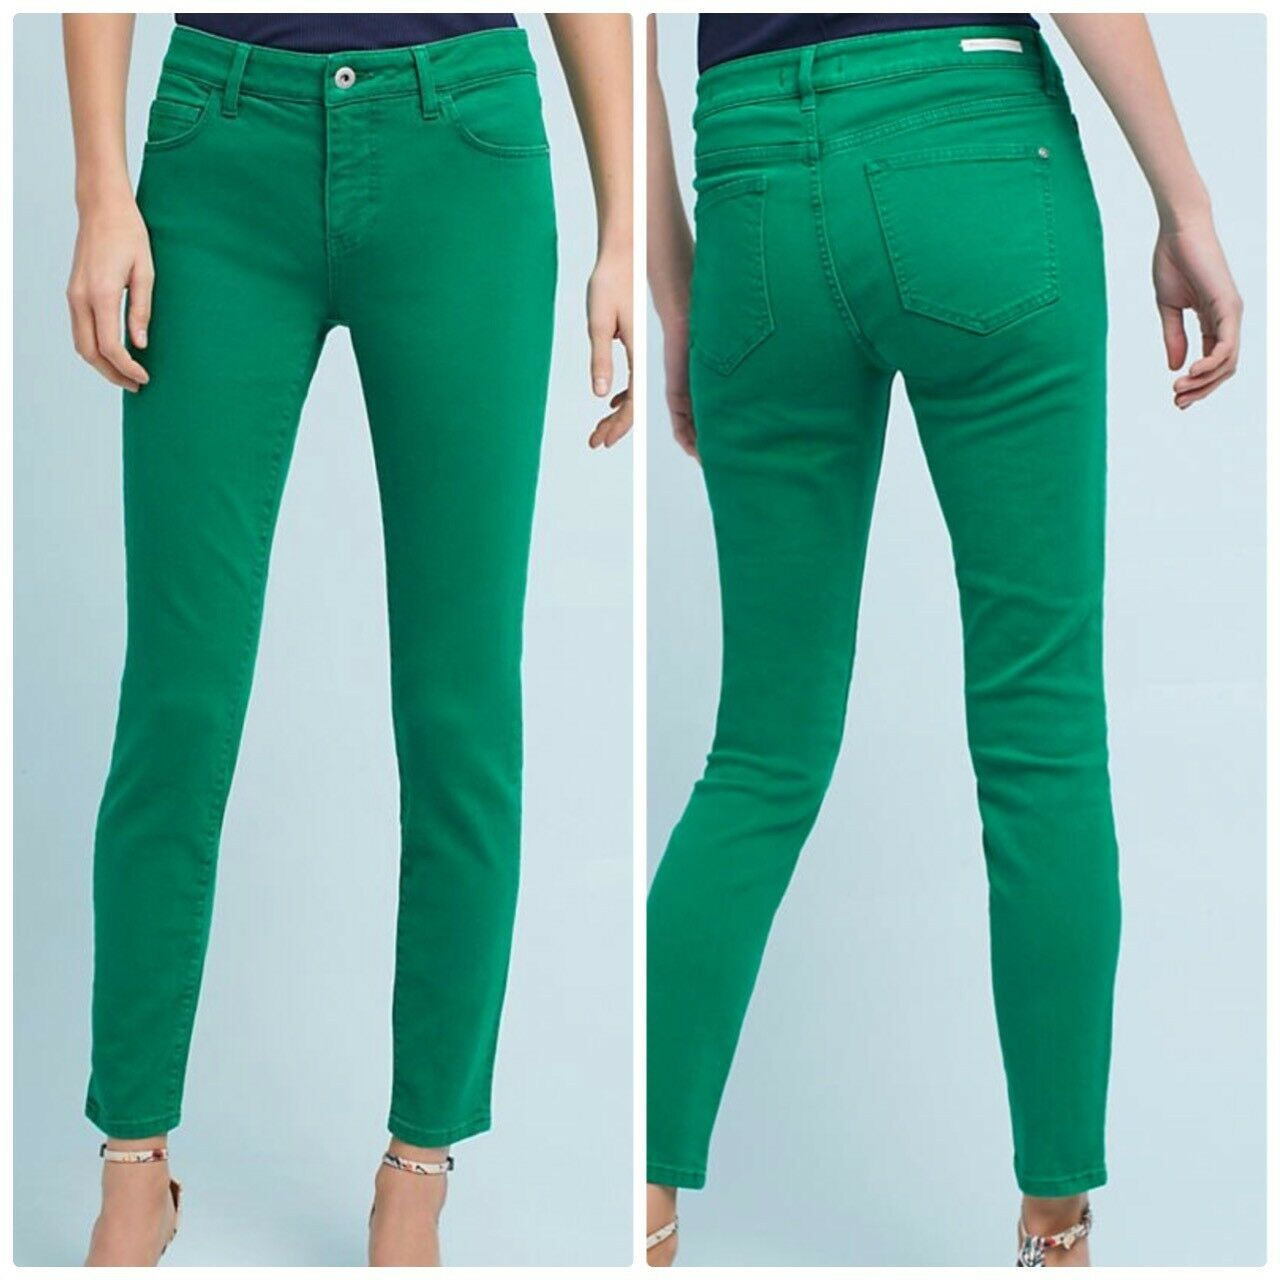 Anthropologie Pilcro Mid-Rise Skinny Jeans Green Irish Size 25 NEW